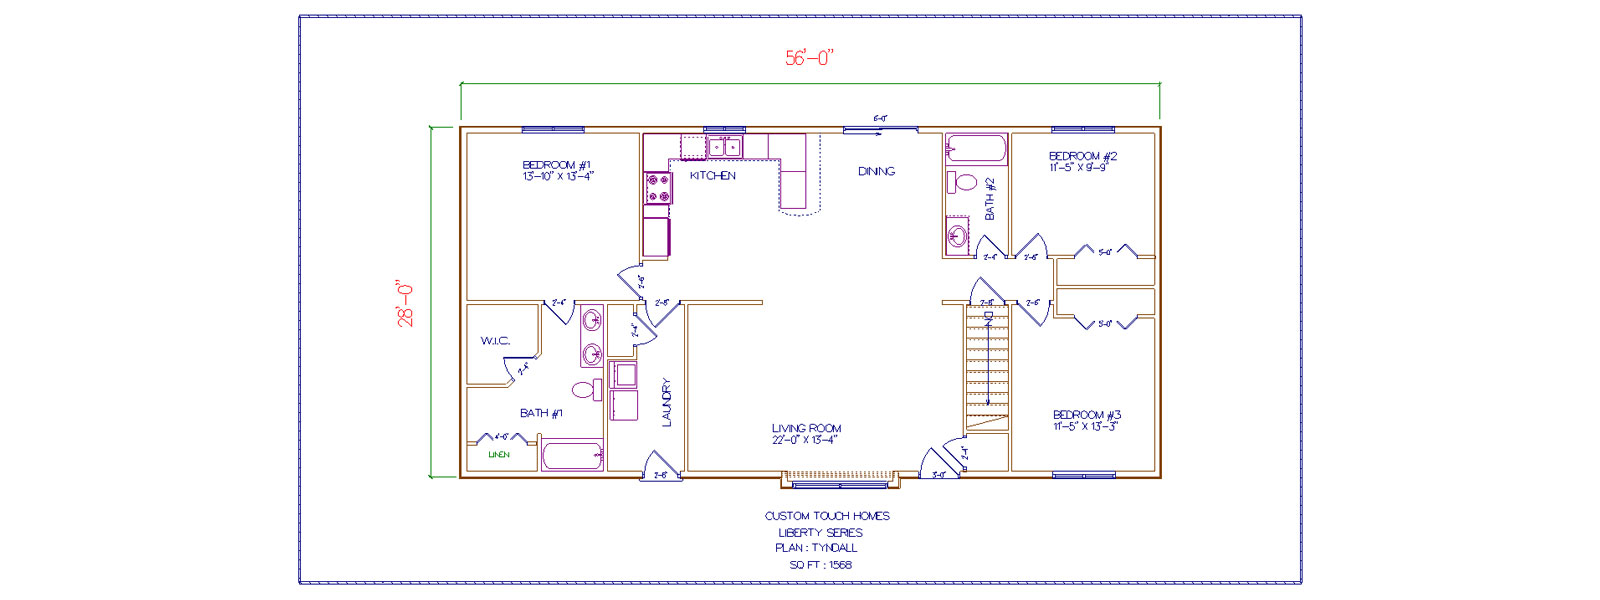 Tyndall Custom Touch Homes